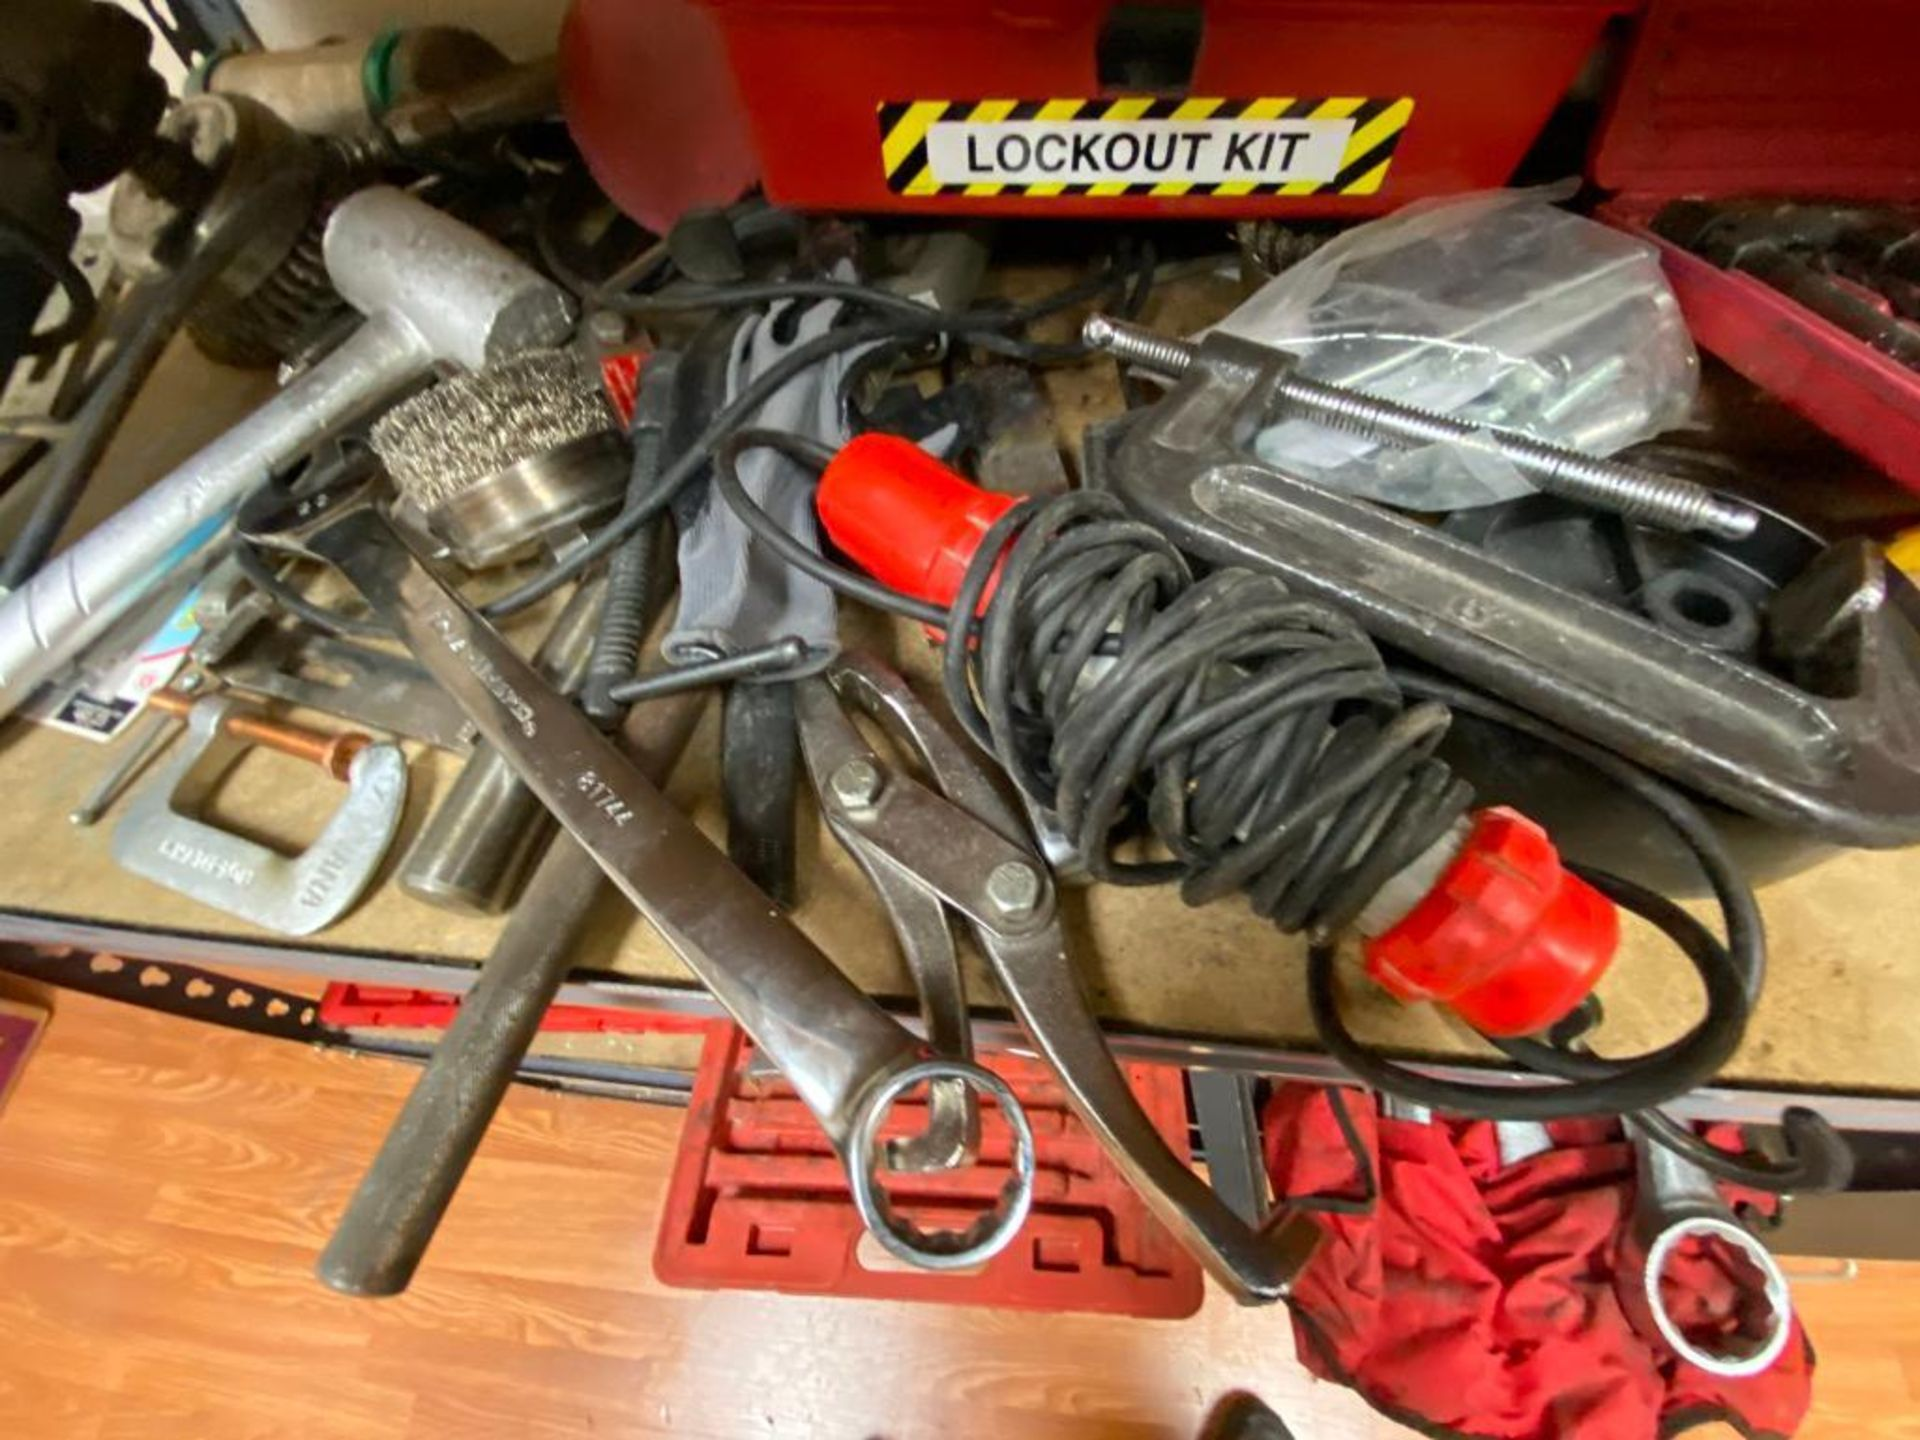 various tools includes bits, large wrenches, lockout tagout kit, grinder - Image 10 of 18